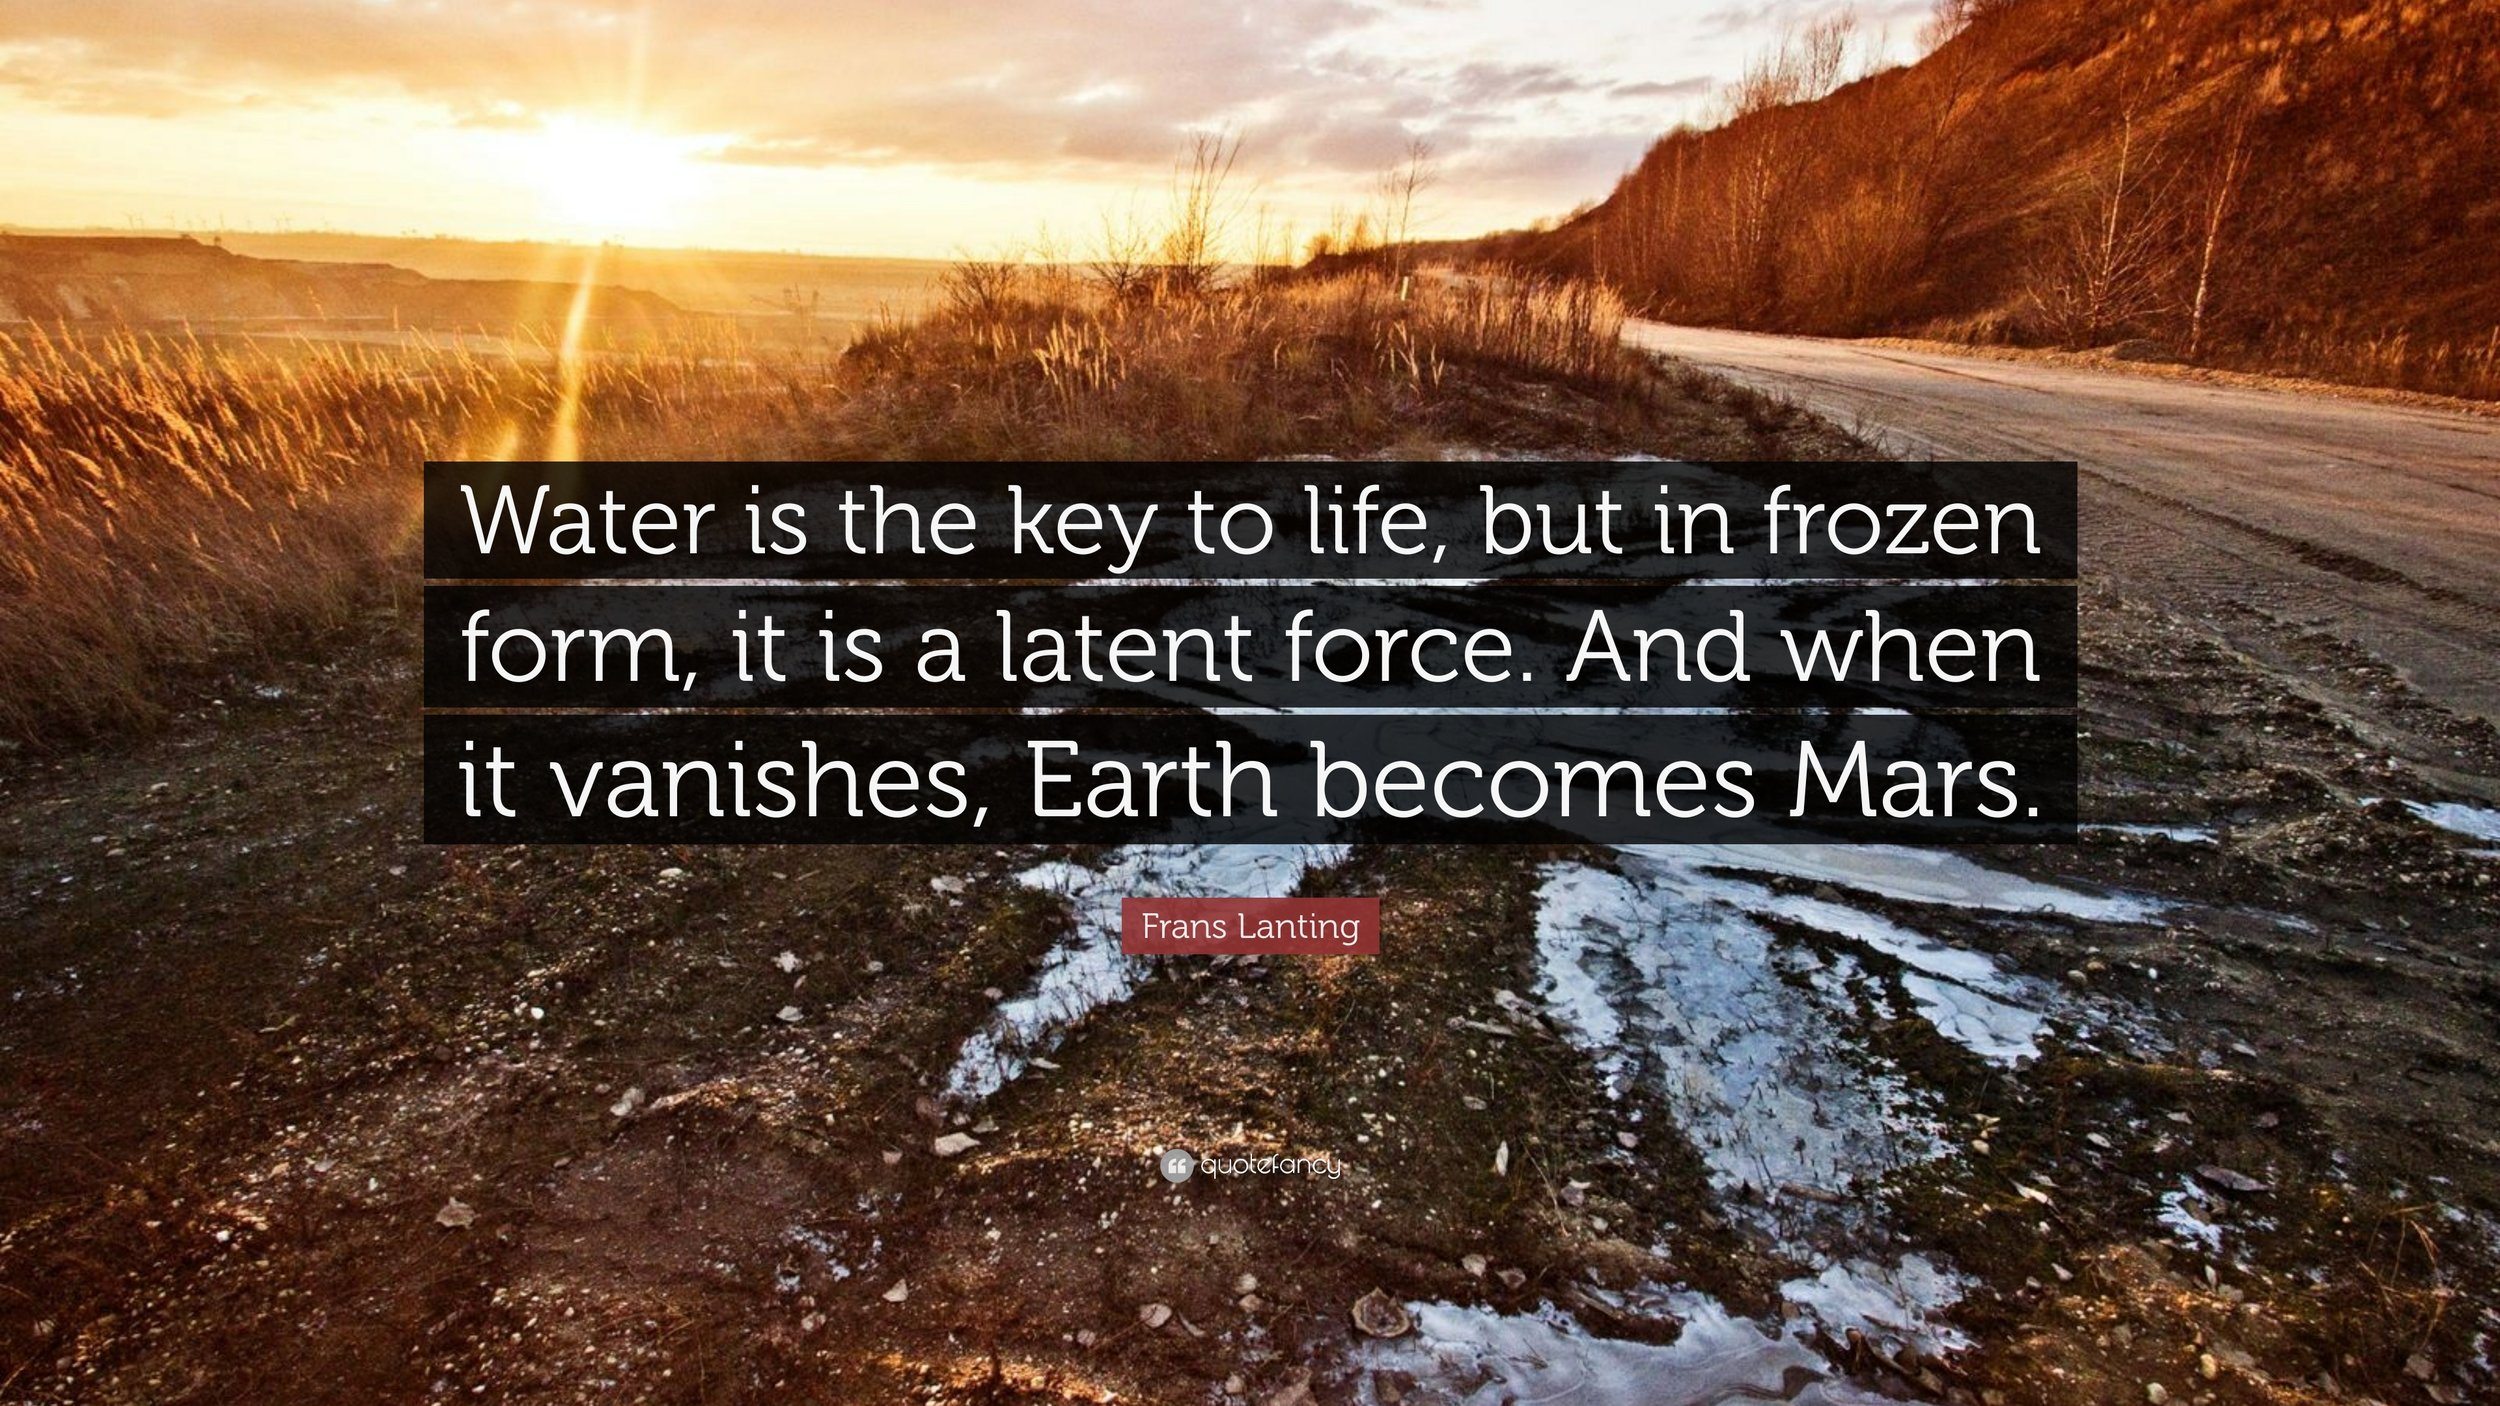 6. 1579163-Frans-Lanting-Quote-Water-is-the-key-to-life-but-in-frozen-form-it.jpg